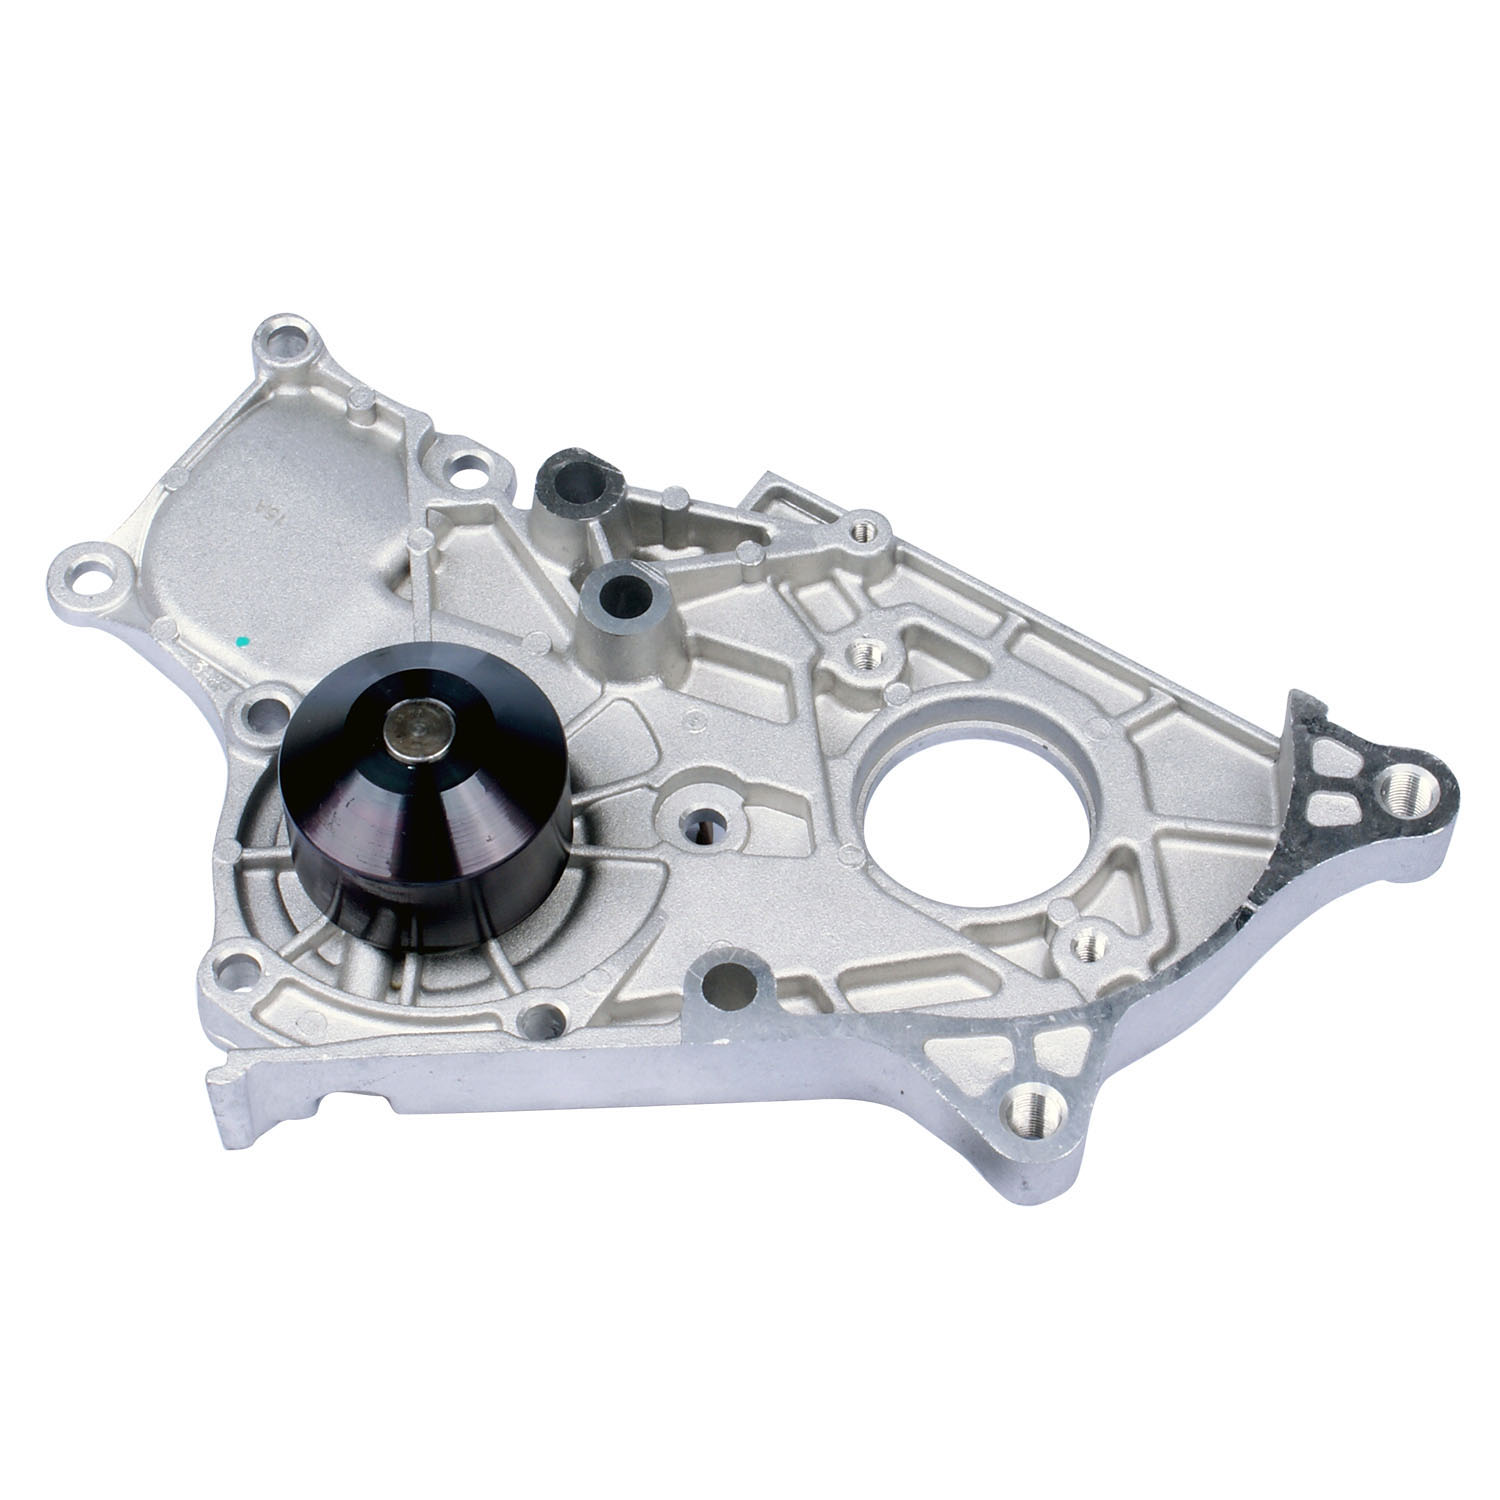 New GMB Water Pump for Toyota Corolla Camry 1.8L 2.0L Turbo Diesel 1984-1986